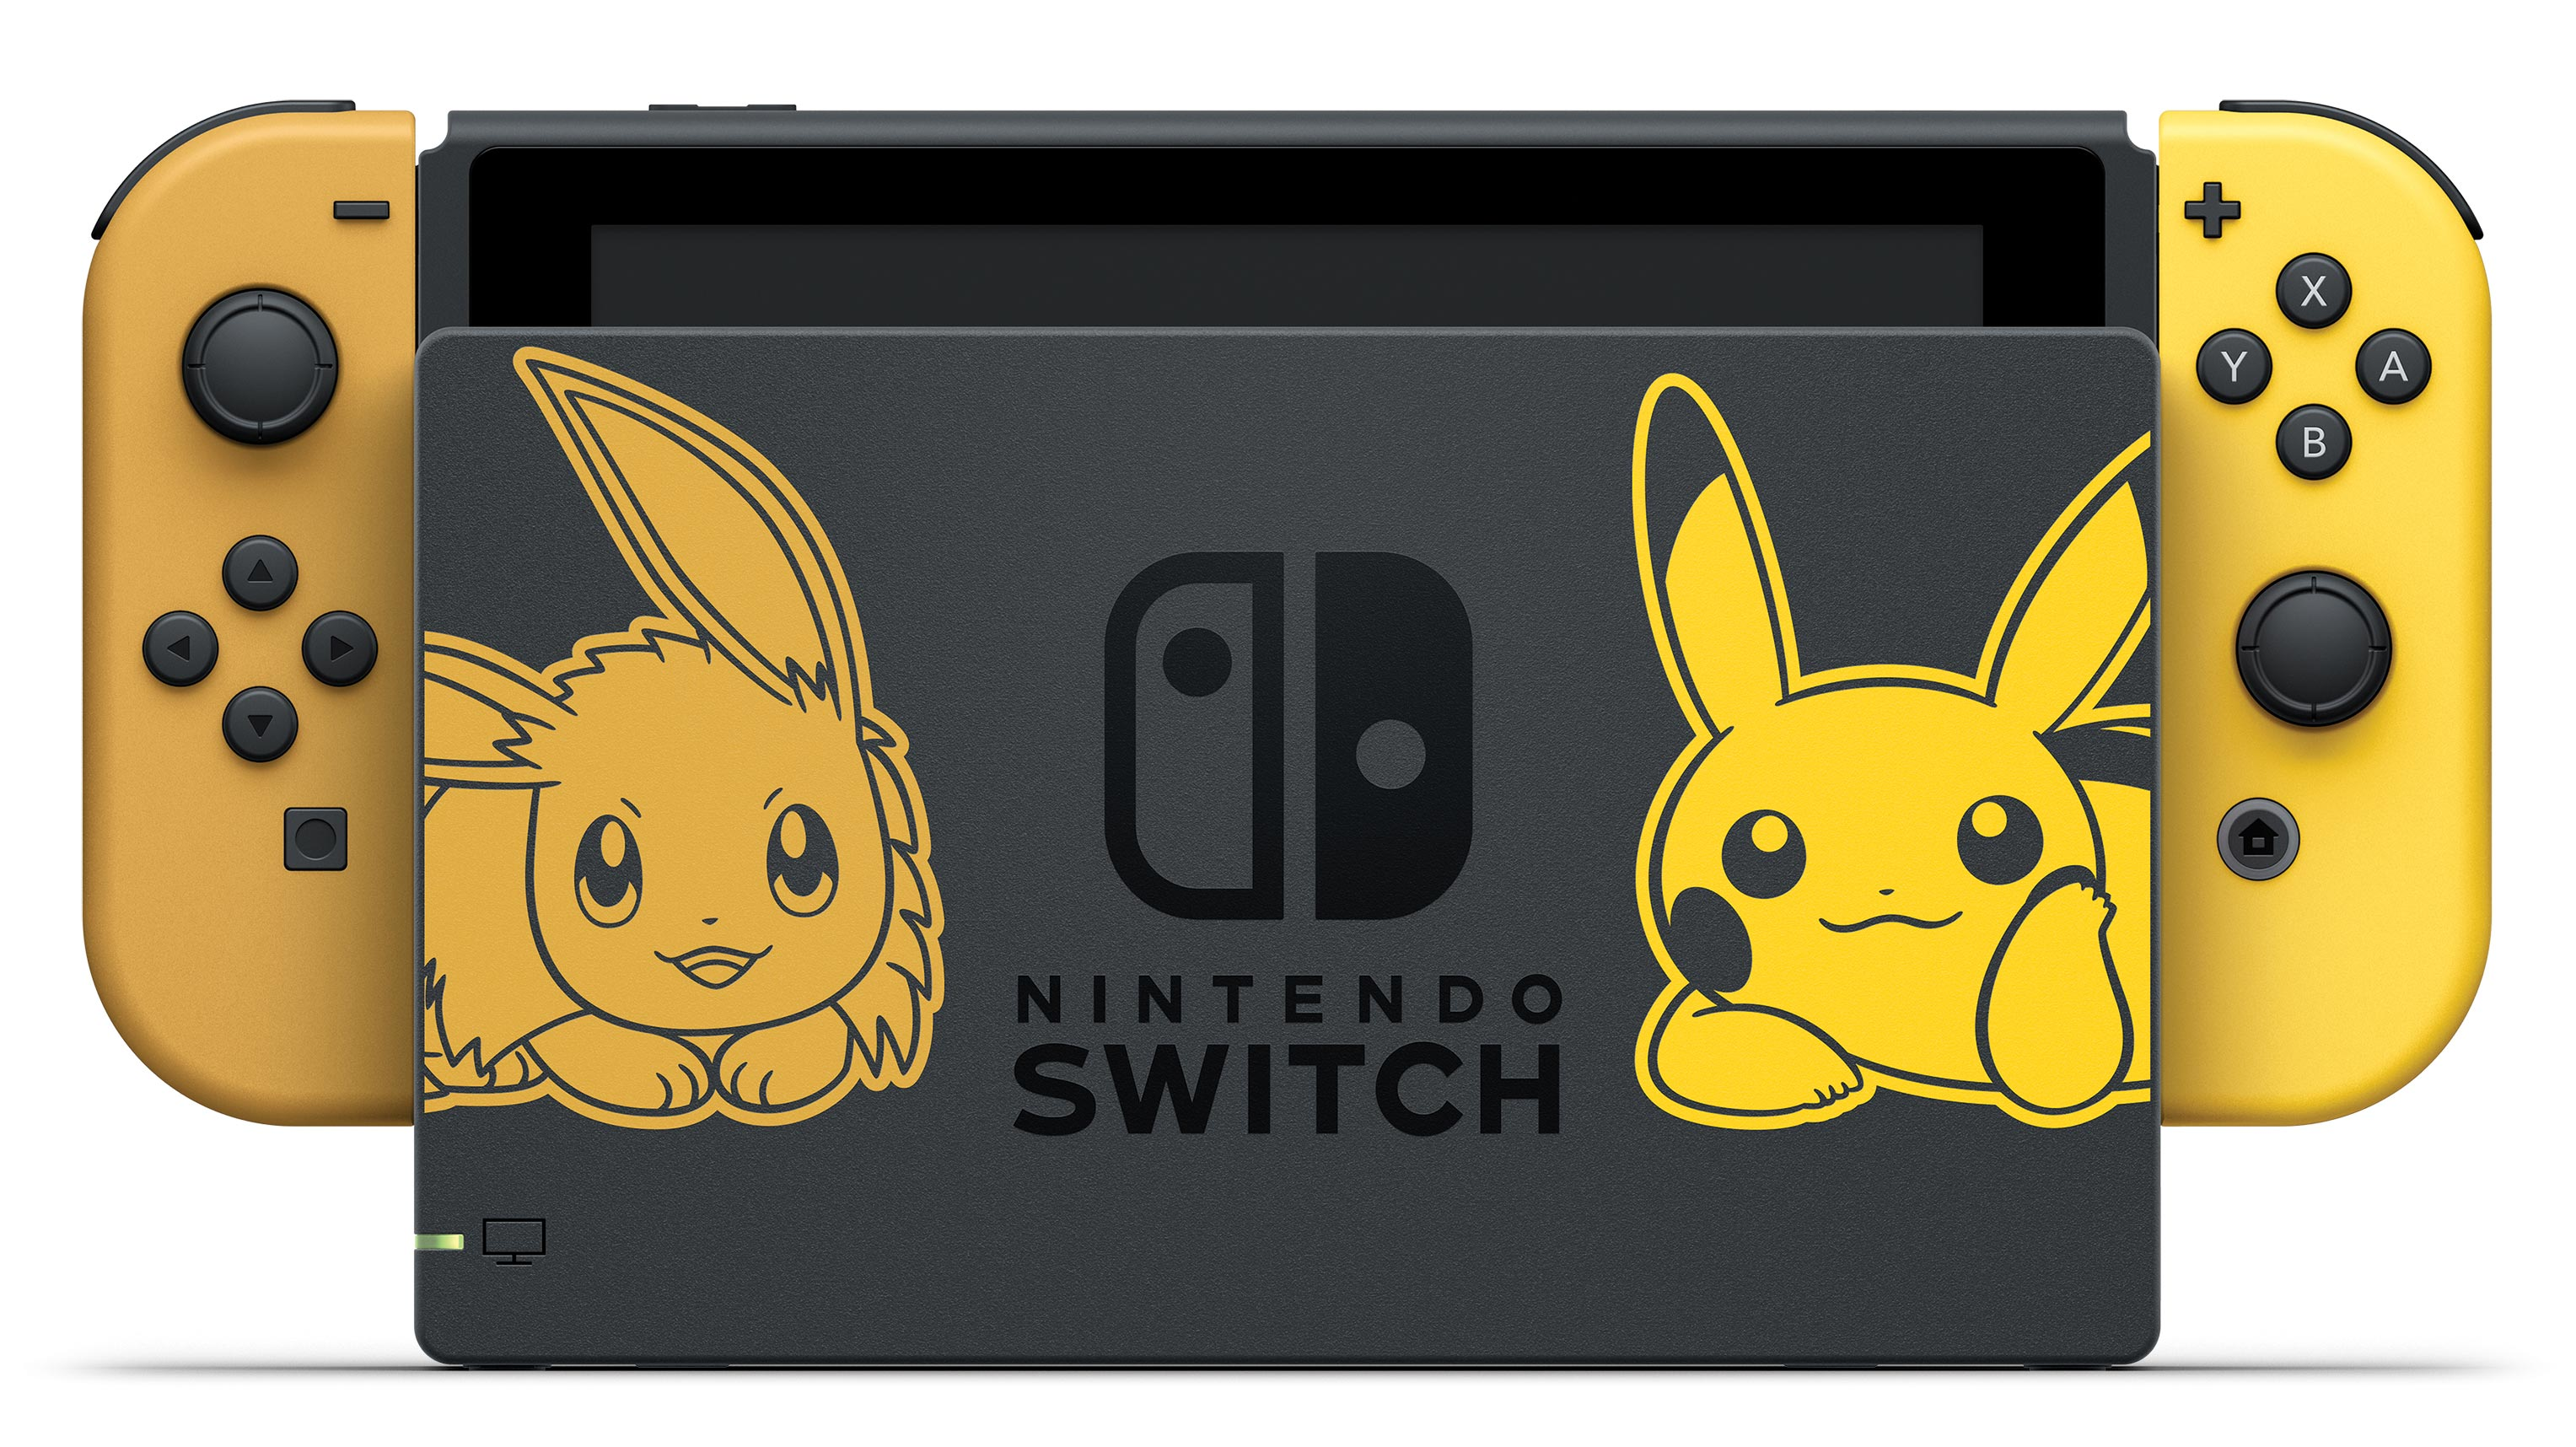 Pokémon-themed Pikachu and Eevee Nintendo Switch console 1 out of 5 image gallery